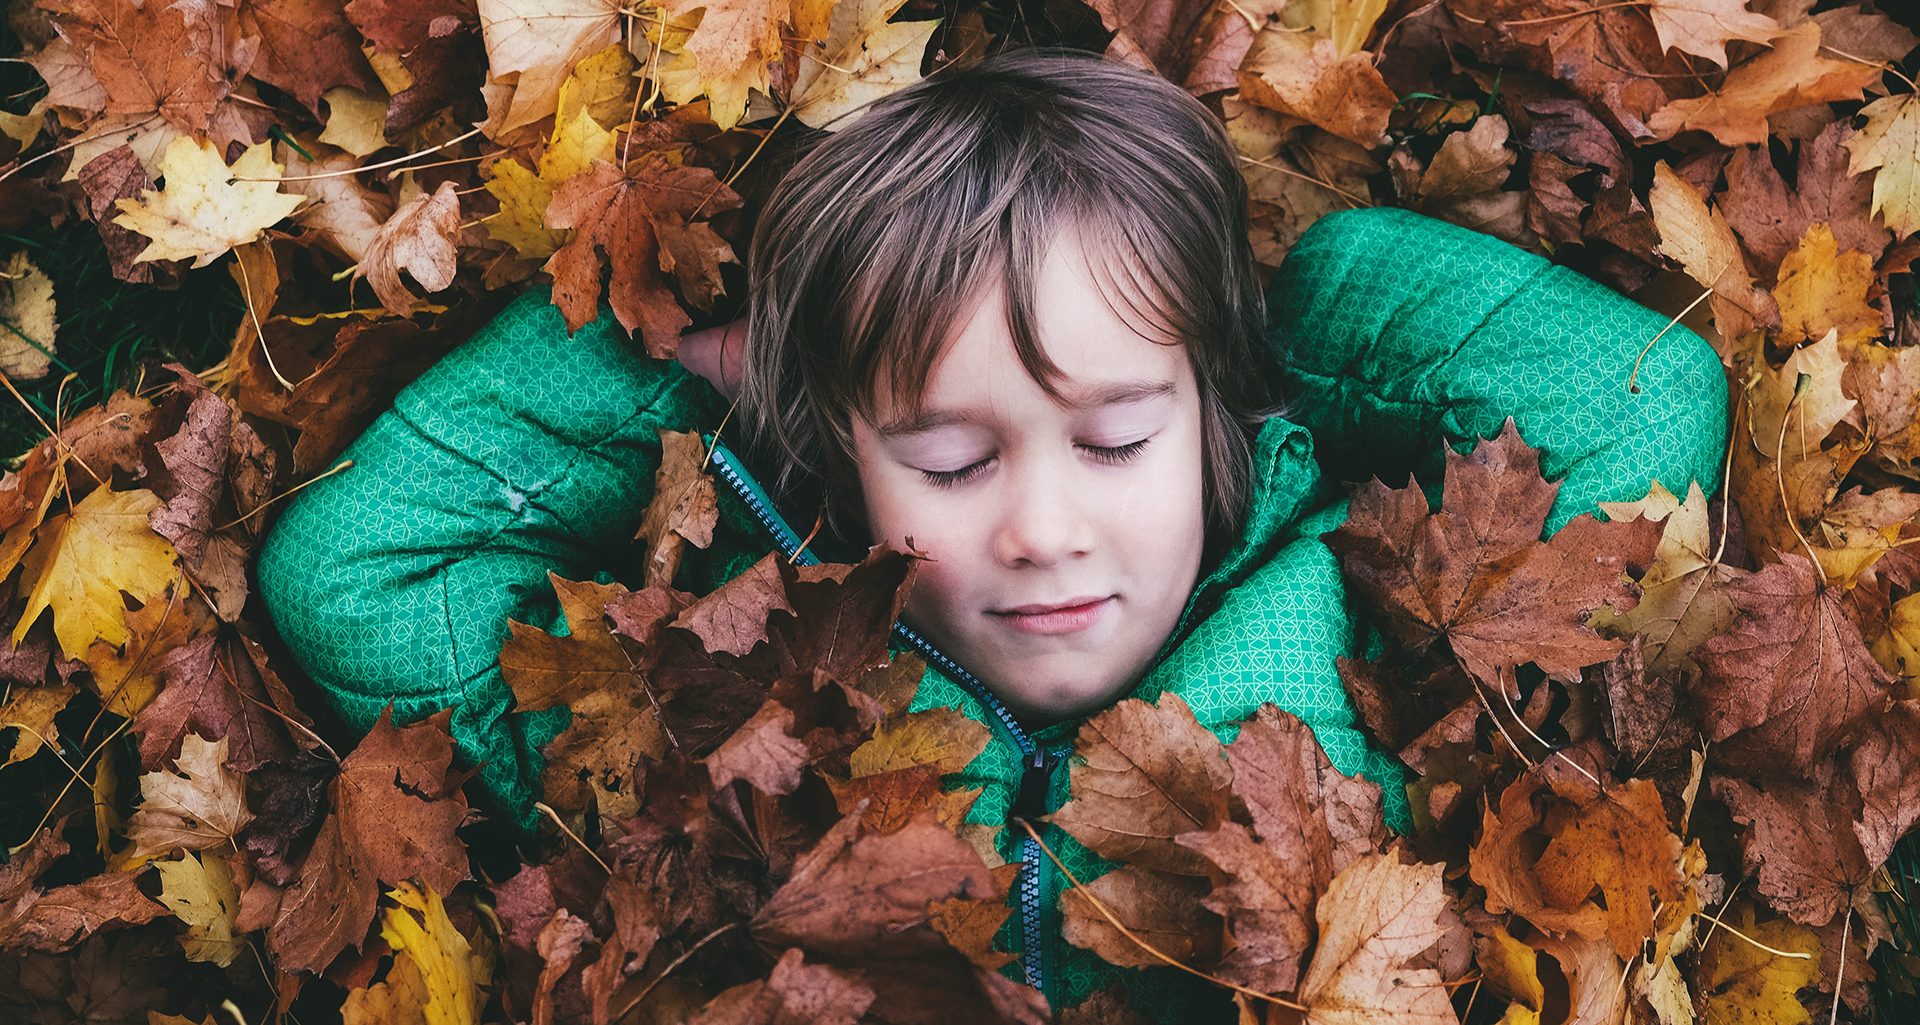 Boy sleeping in pile of fall leaves